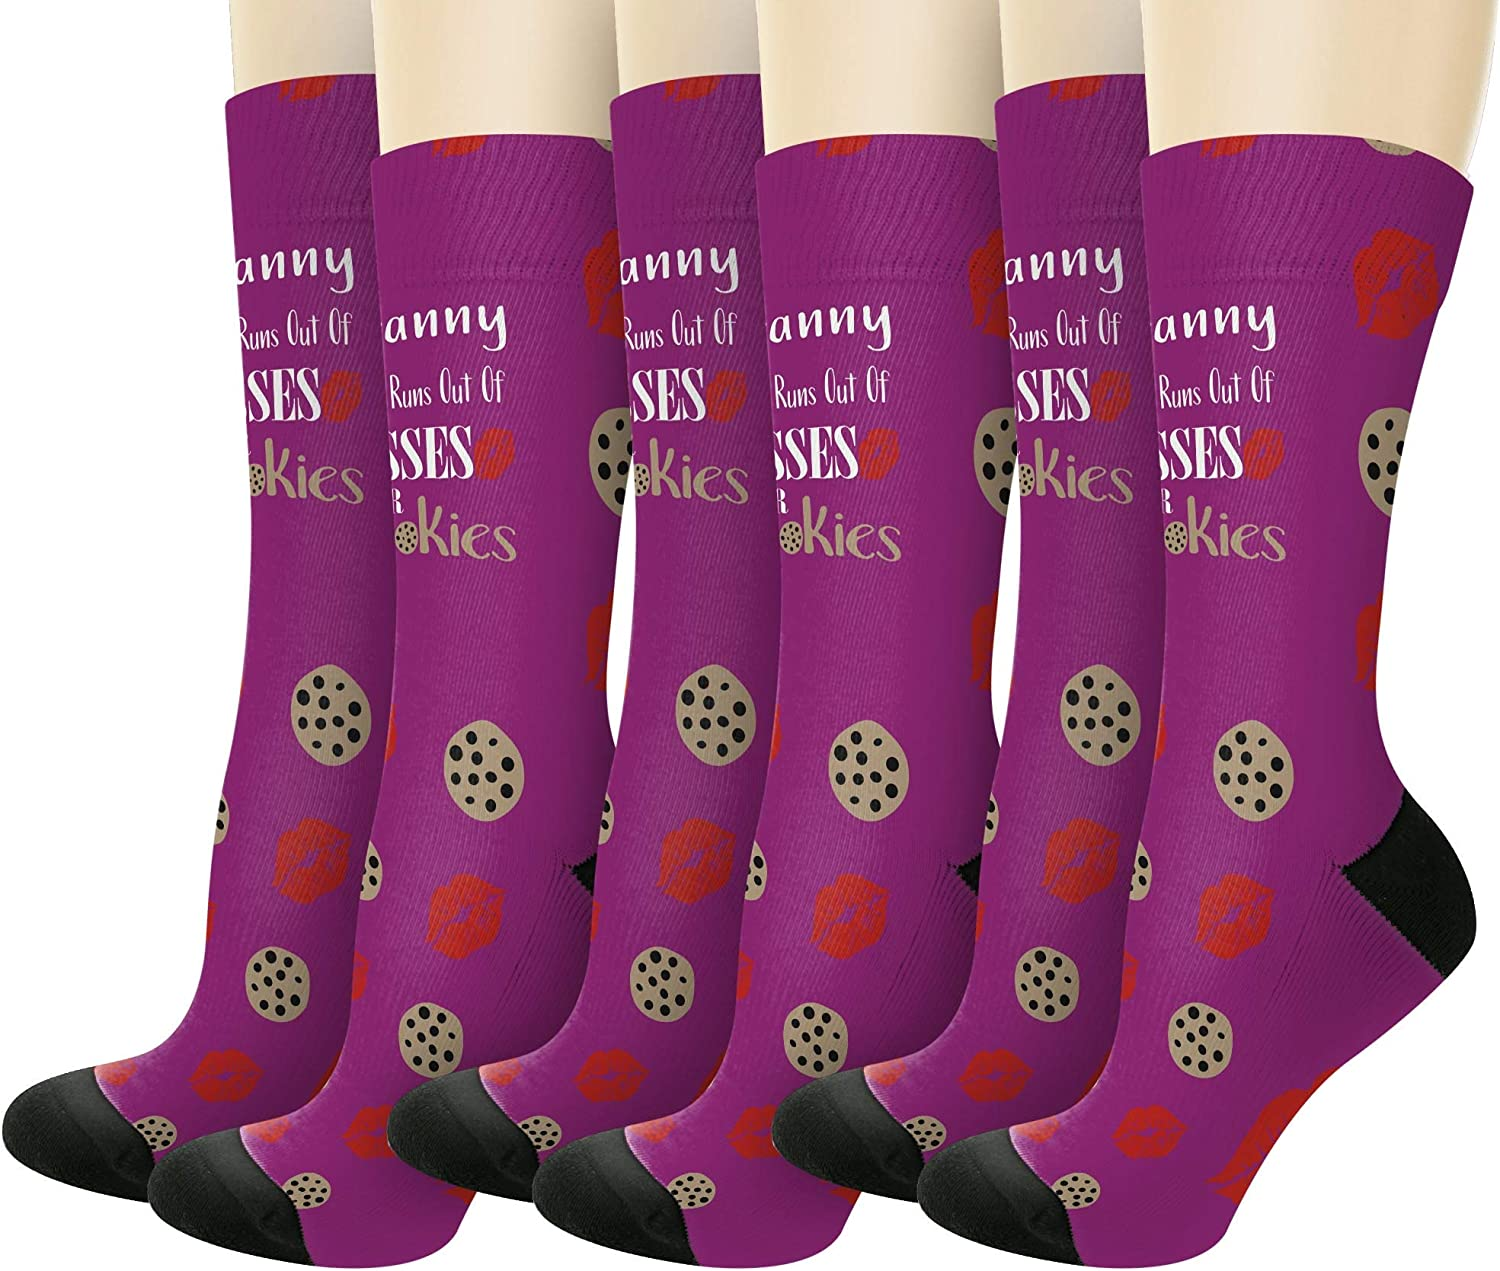 Granny Never Runs Out Of Kisses Or Cookies Novelty Crew Socks